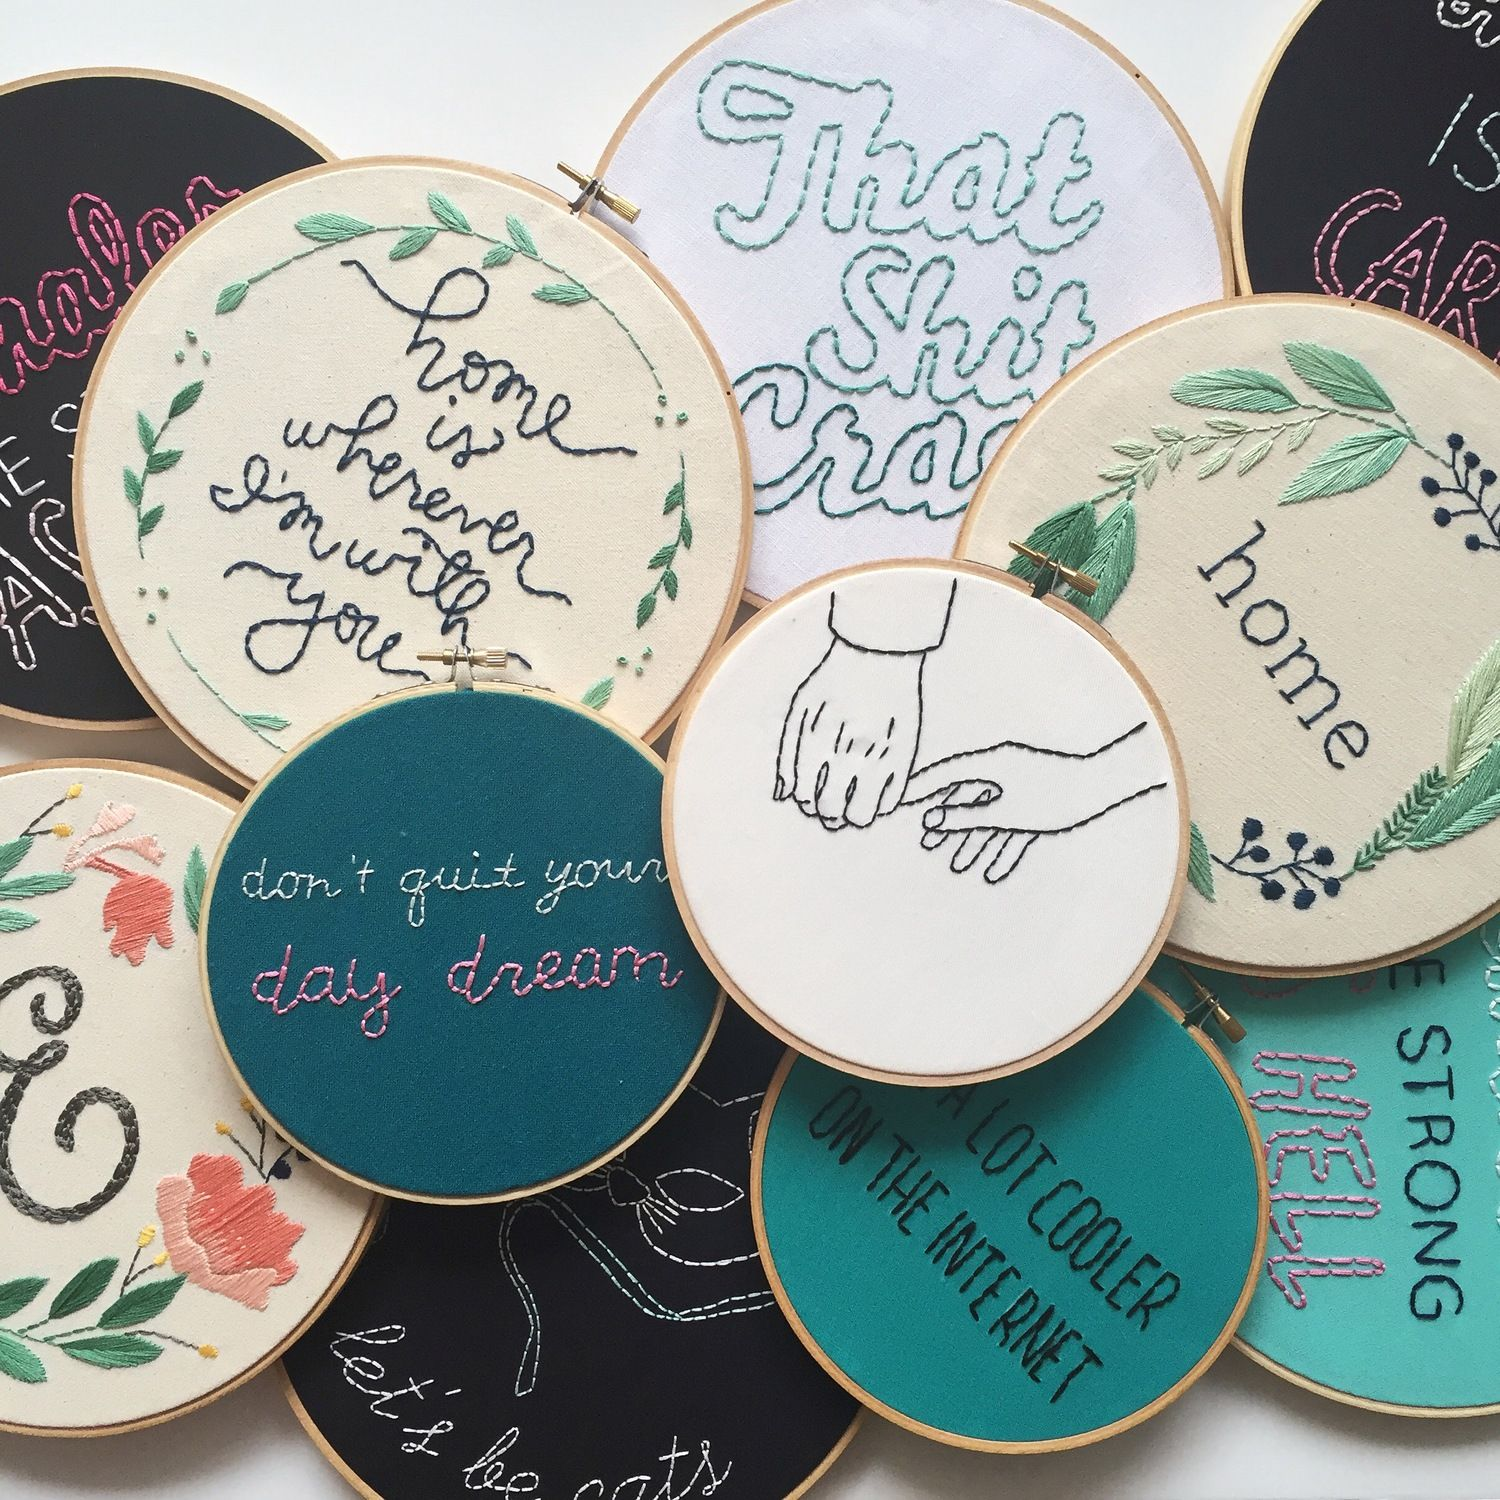 """""""This feed, run by artist Jennifer Cardenas Riggs, is equal parts comedy and embroidery. Her designs keep me cracking up and coming back for more."""""""